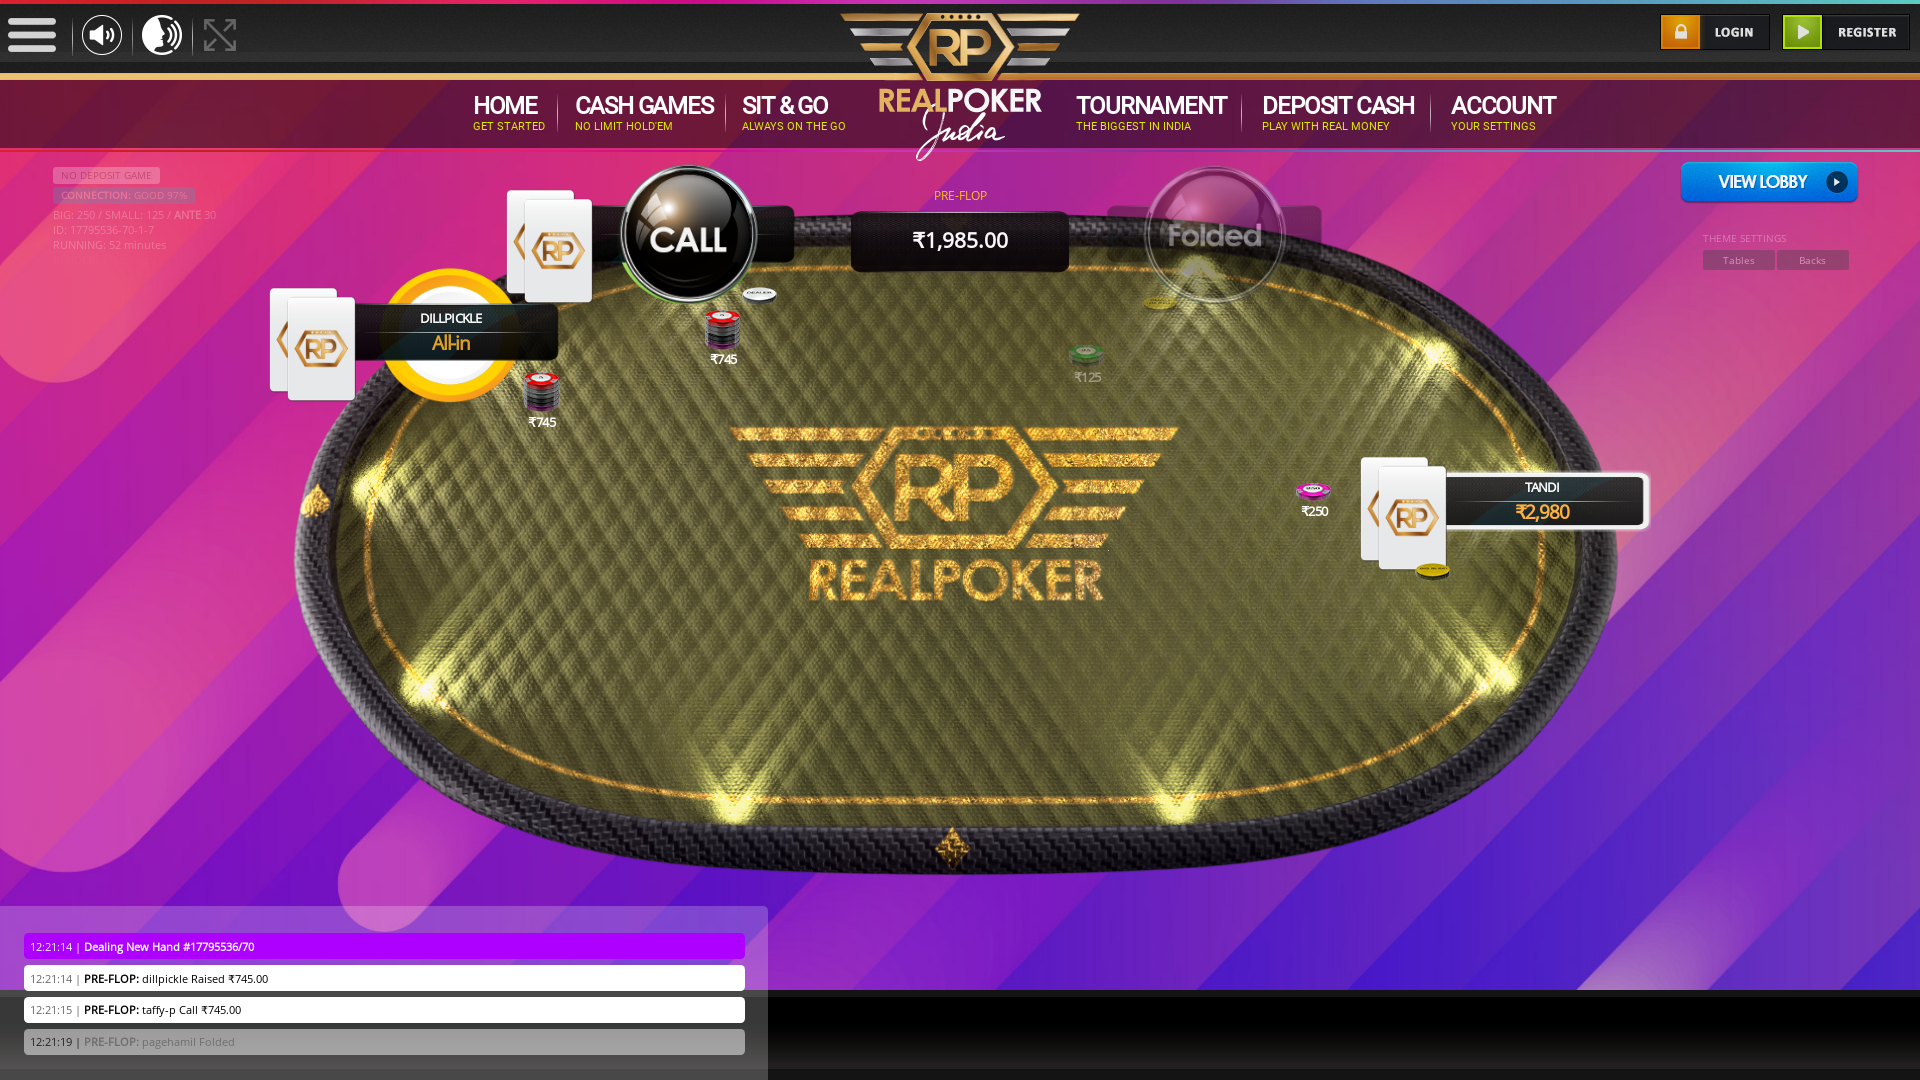 The 71st hand dealt between pagehamil, dillpickle, tandi, taffy-p,